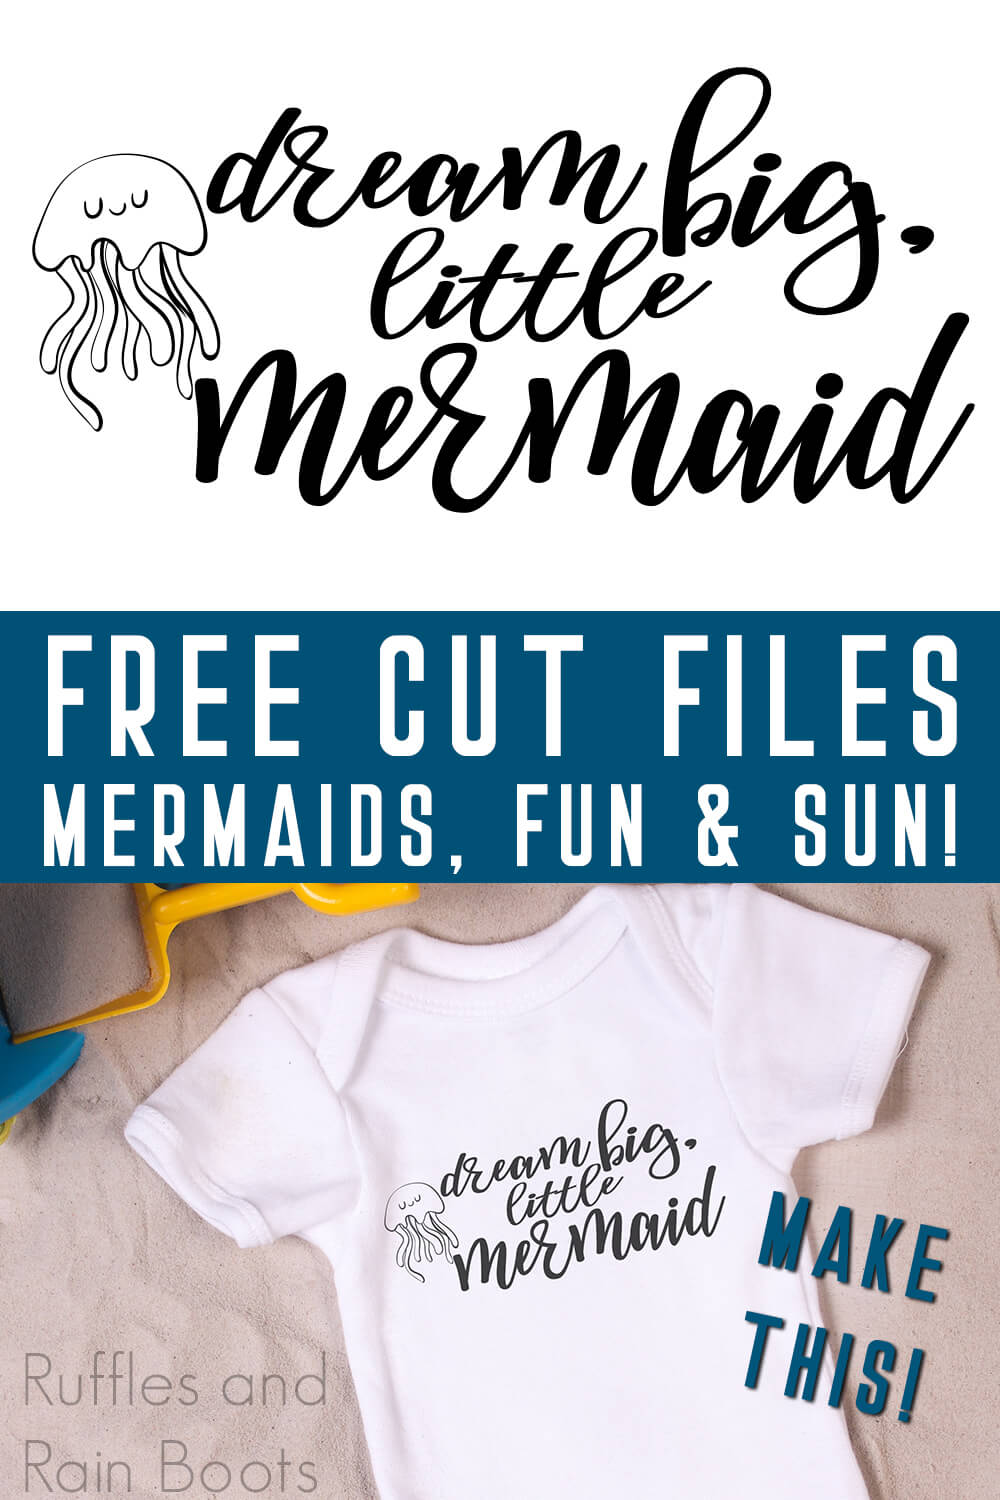 photo collage of Dream big little Mermaid free mermaid cut file for cricut on baby onesie with text which reads free cut files mermaids, fun & sun!